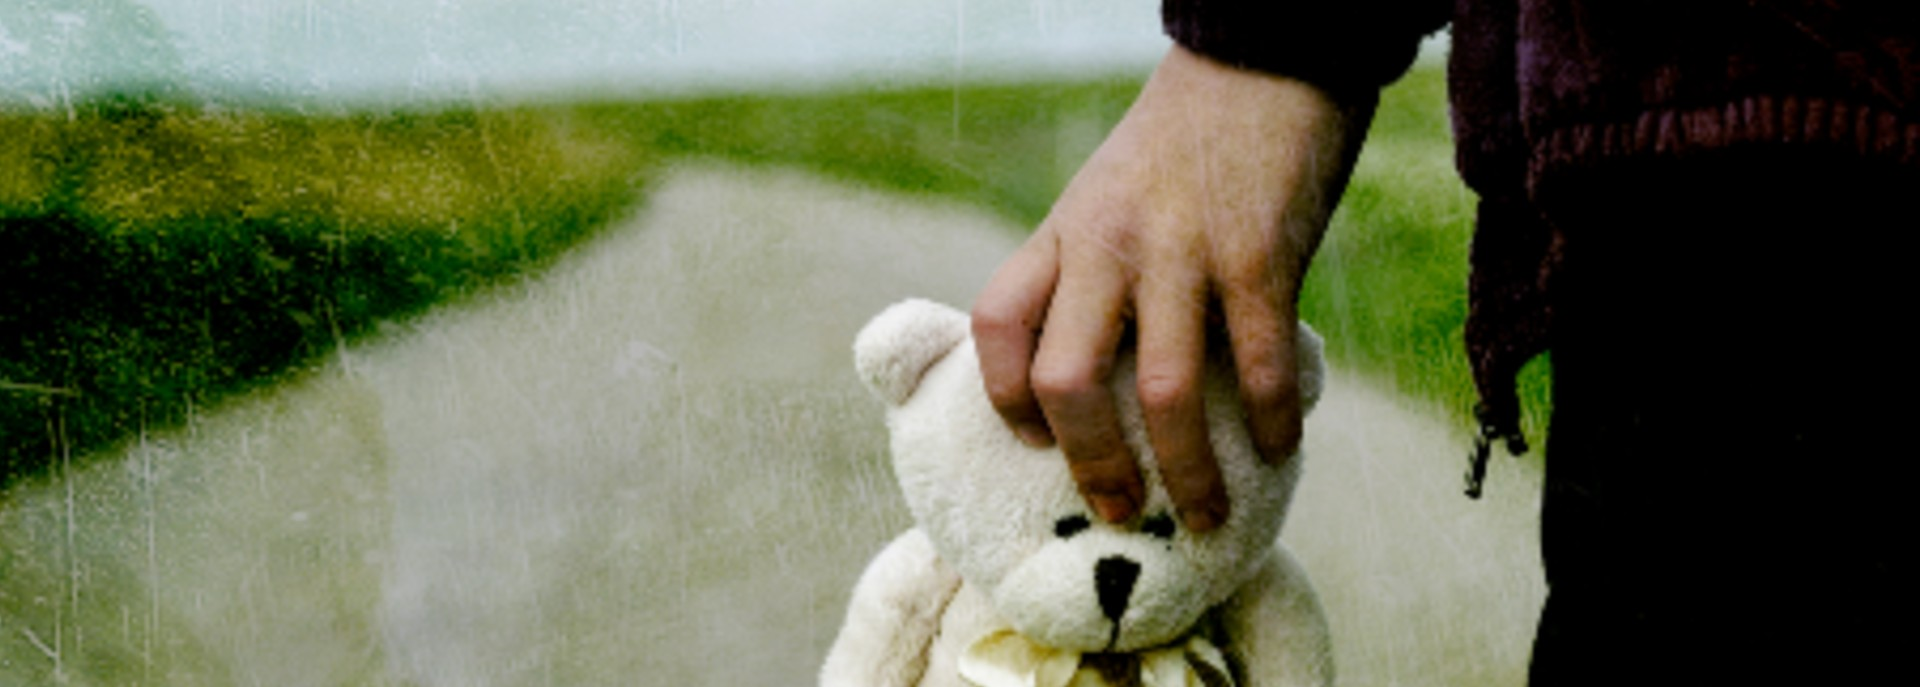 Child's hand holding a white teddy bear